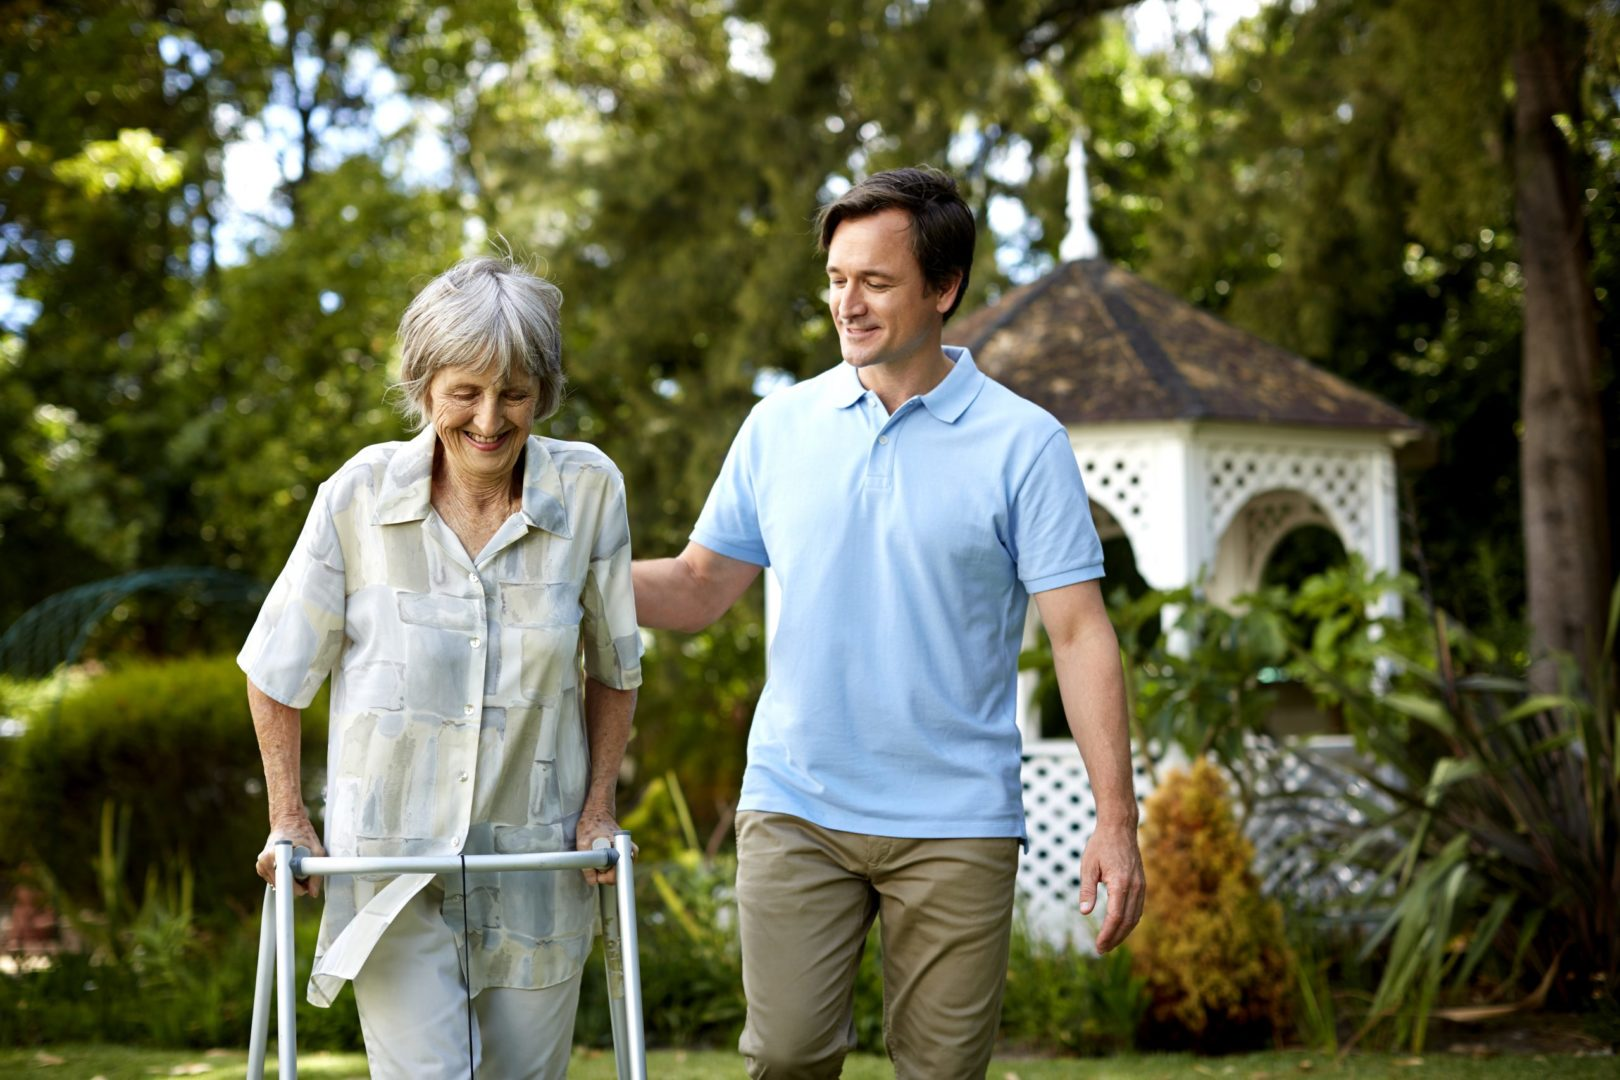 Adult son assisting mom with walker at nearby park